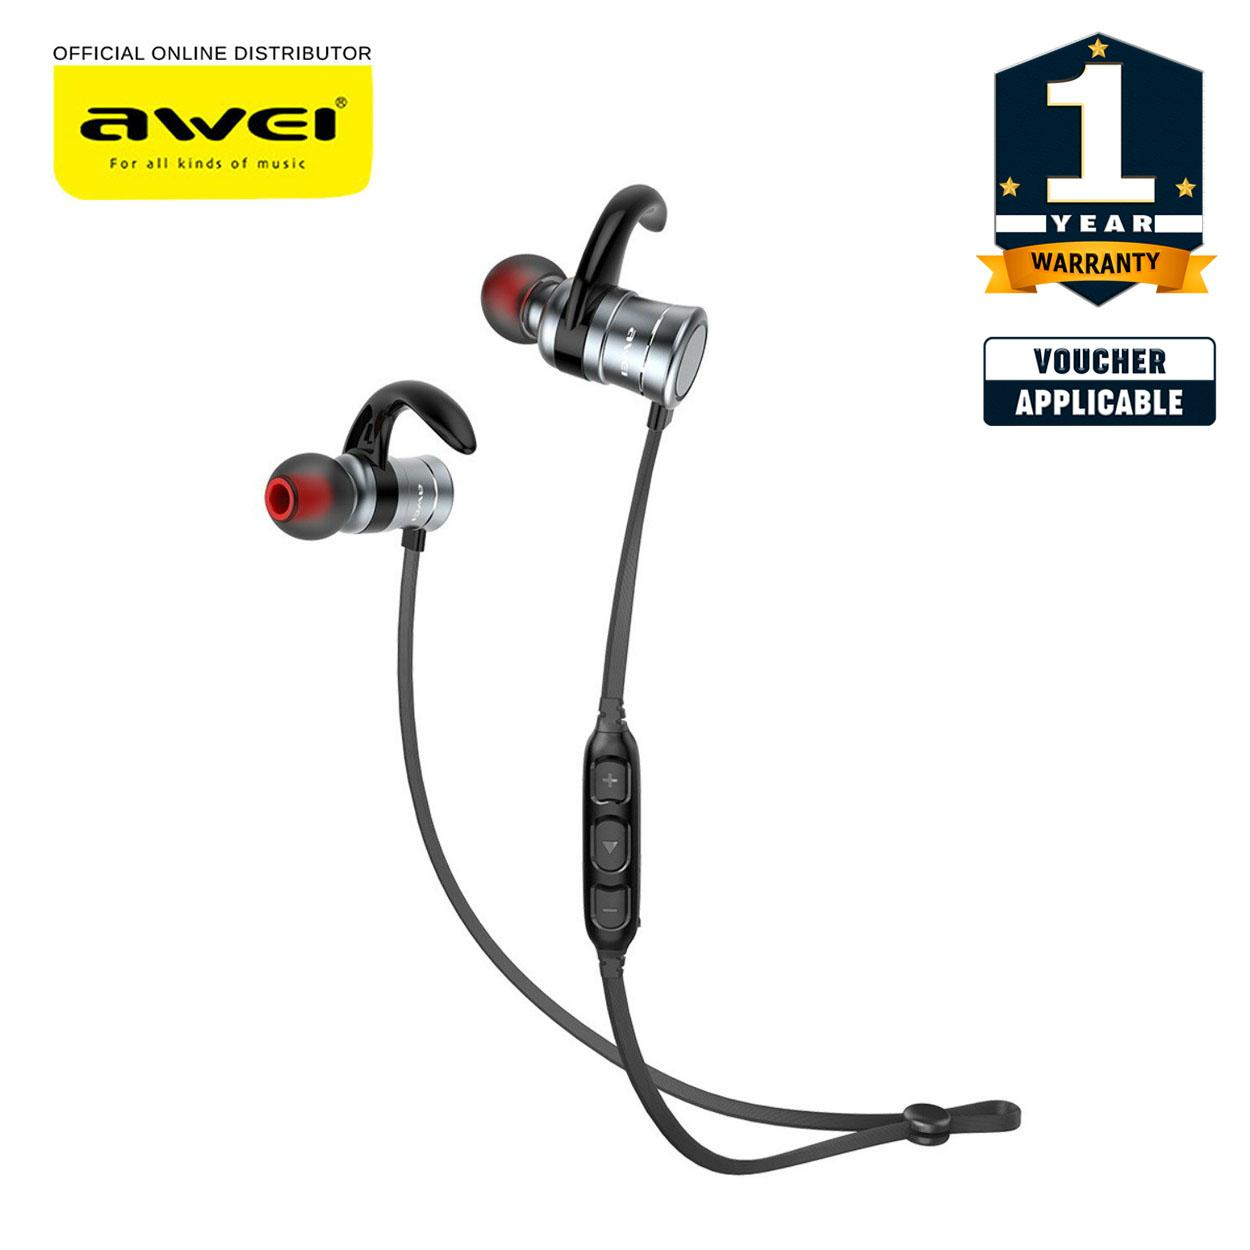 0a376646078 In-ear Headphone for sale - In-ear Headphones prices, brands & specs ...